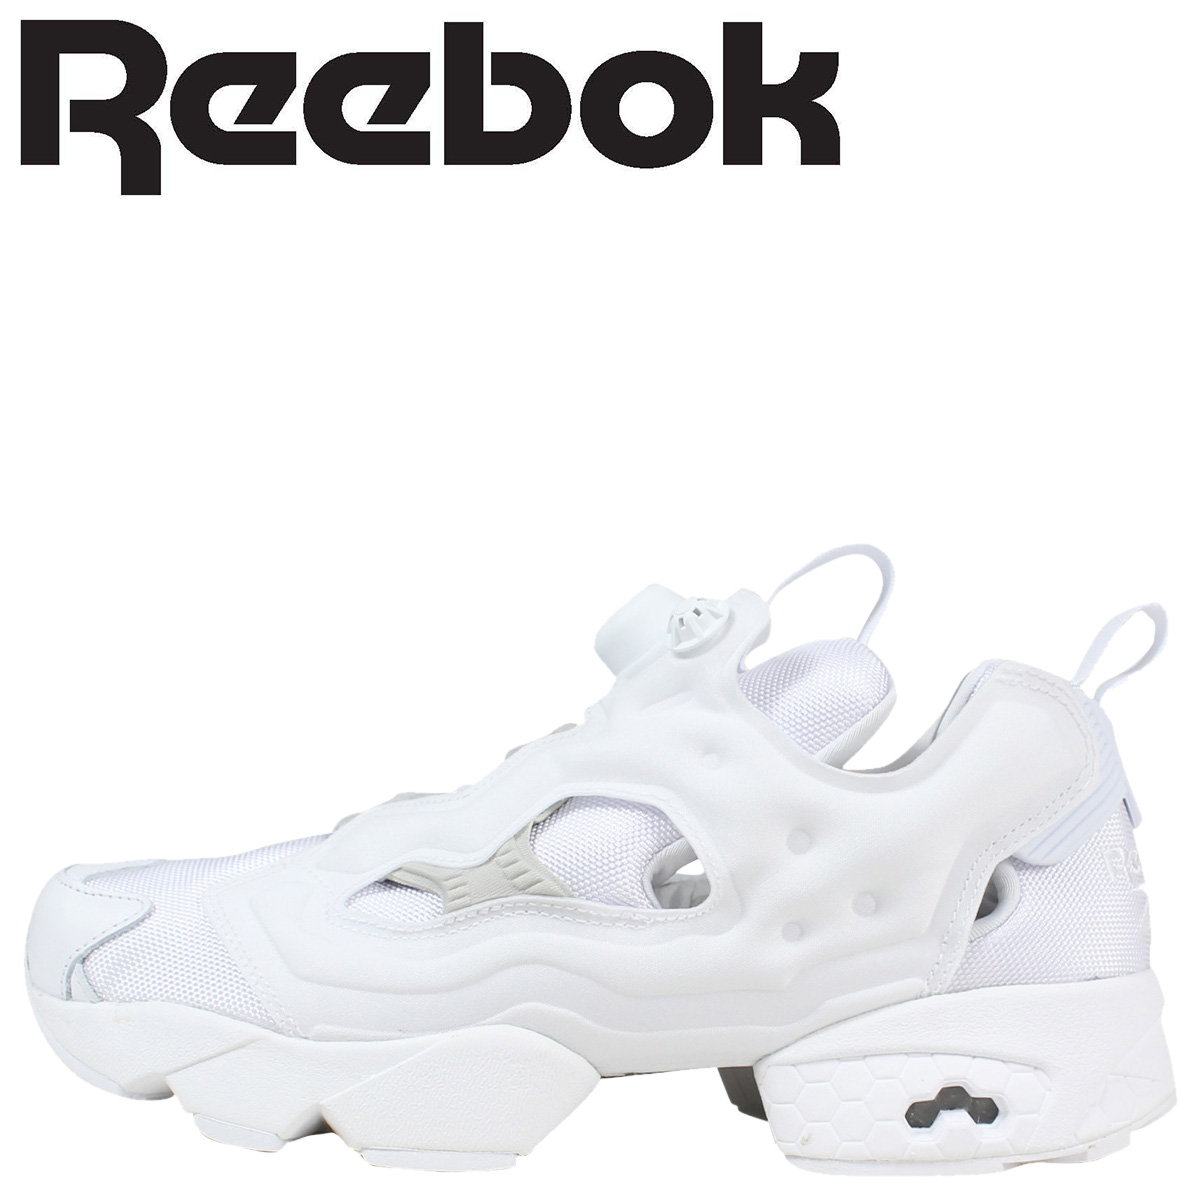 Reebok リーボックポンプフューリースニーカー INSTAPUMP FURY OG AR2199 men gap Dis shoes white